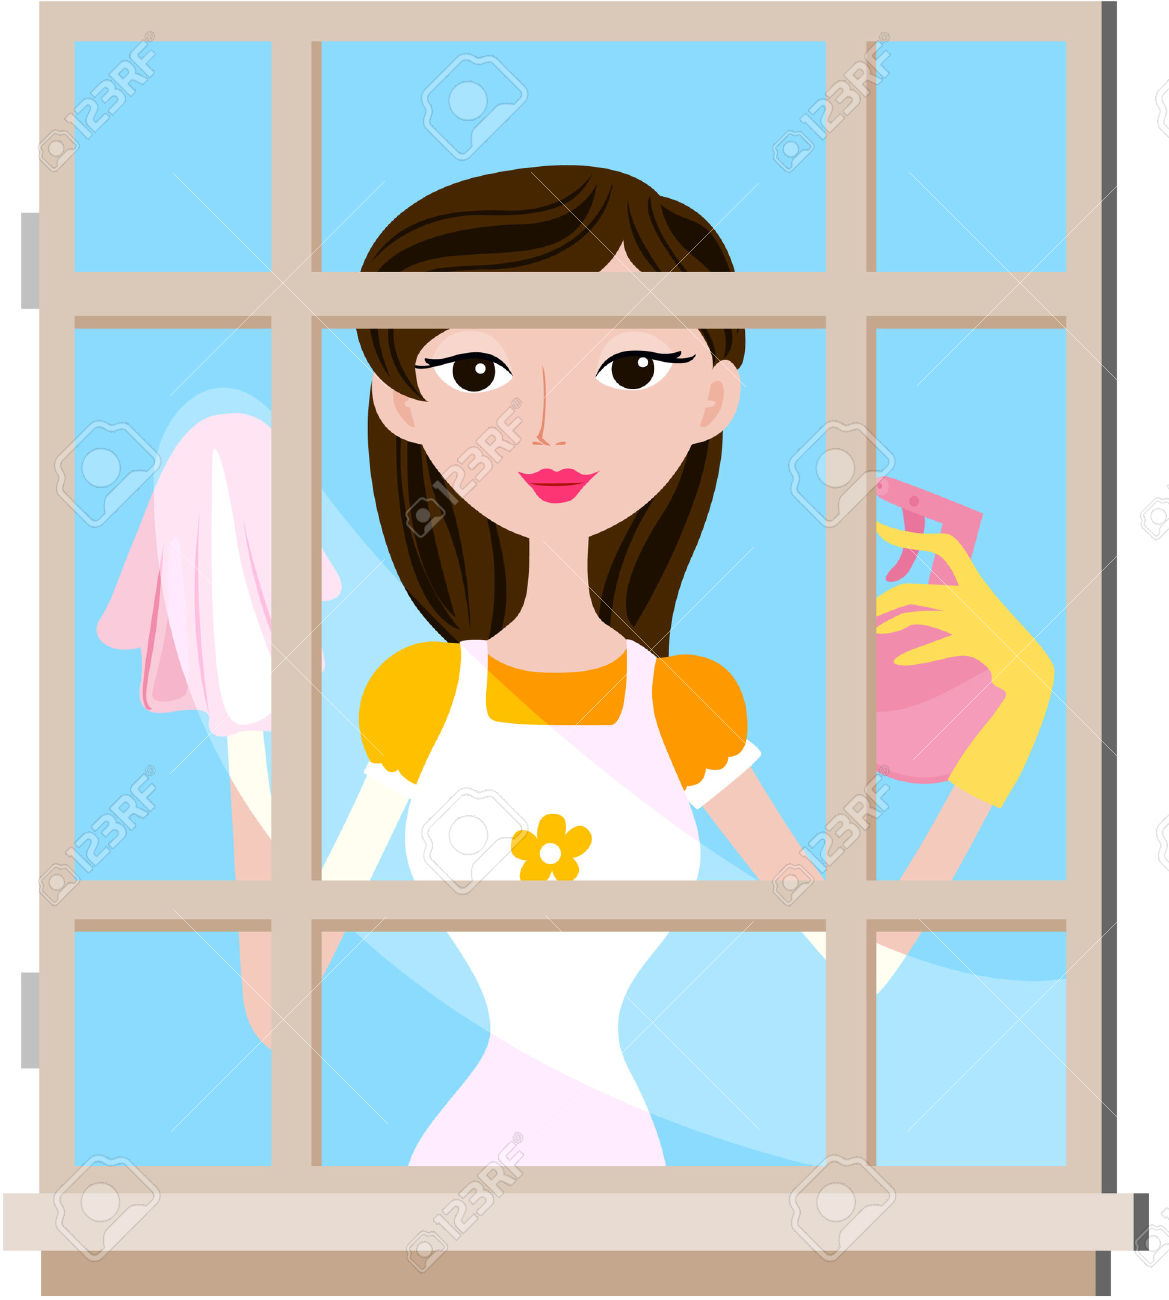 Free Window Cleaning Cliparts, Download Free Clip Art, Free.